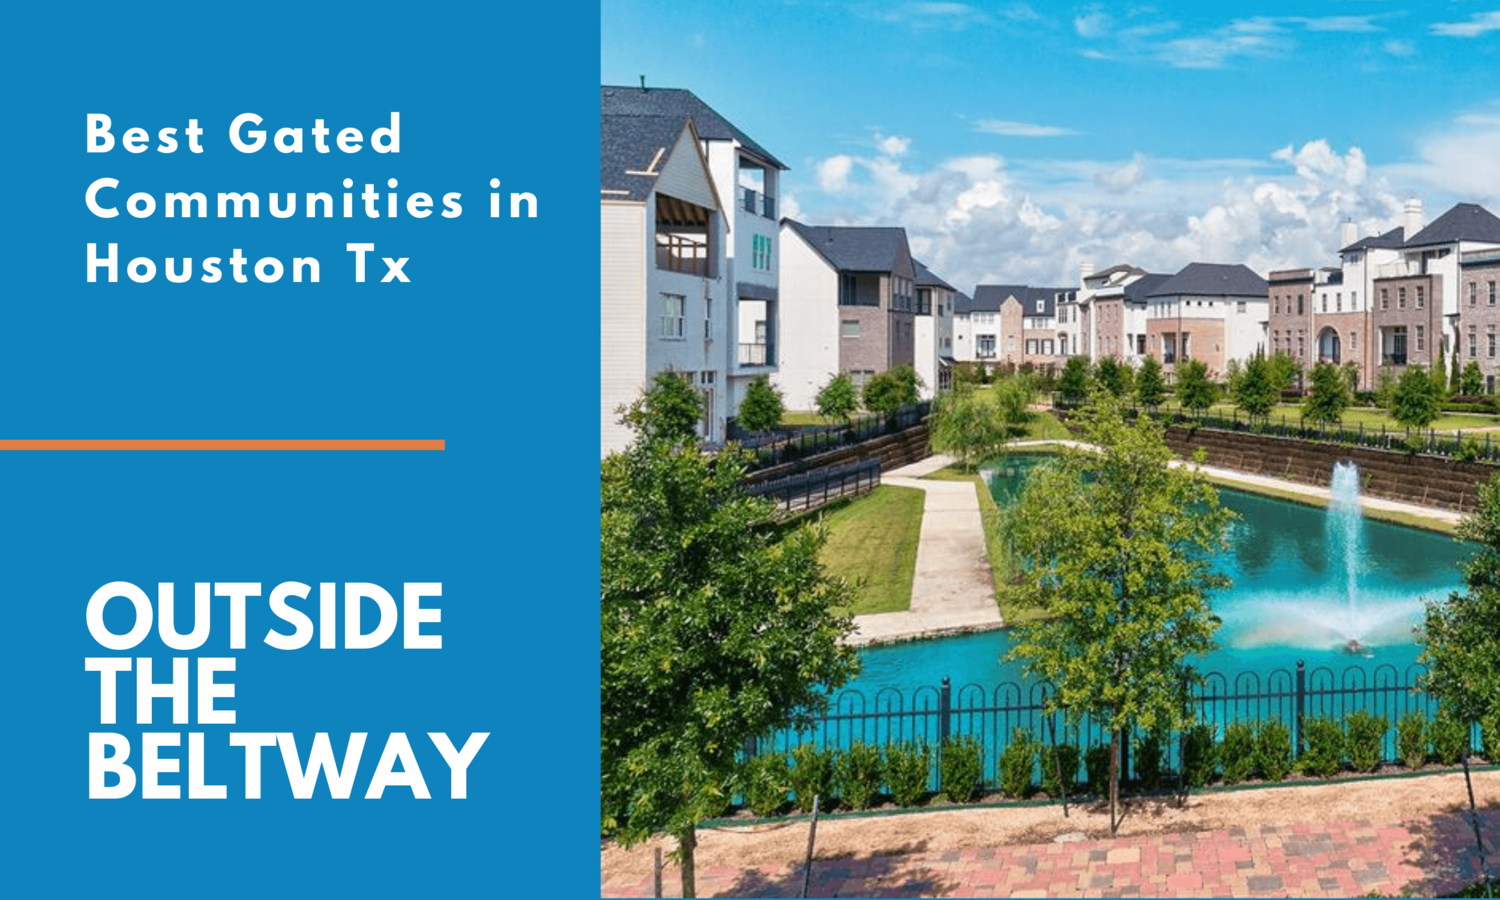 See the Best Gated Communities in Houston Tx Outside the Beltway